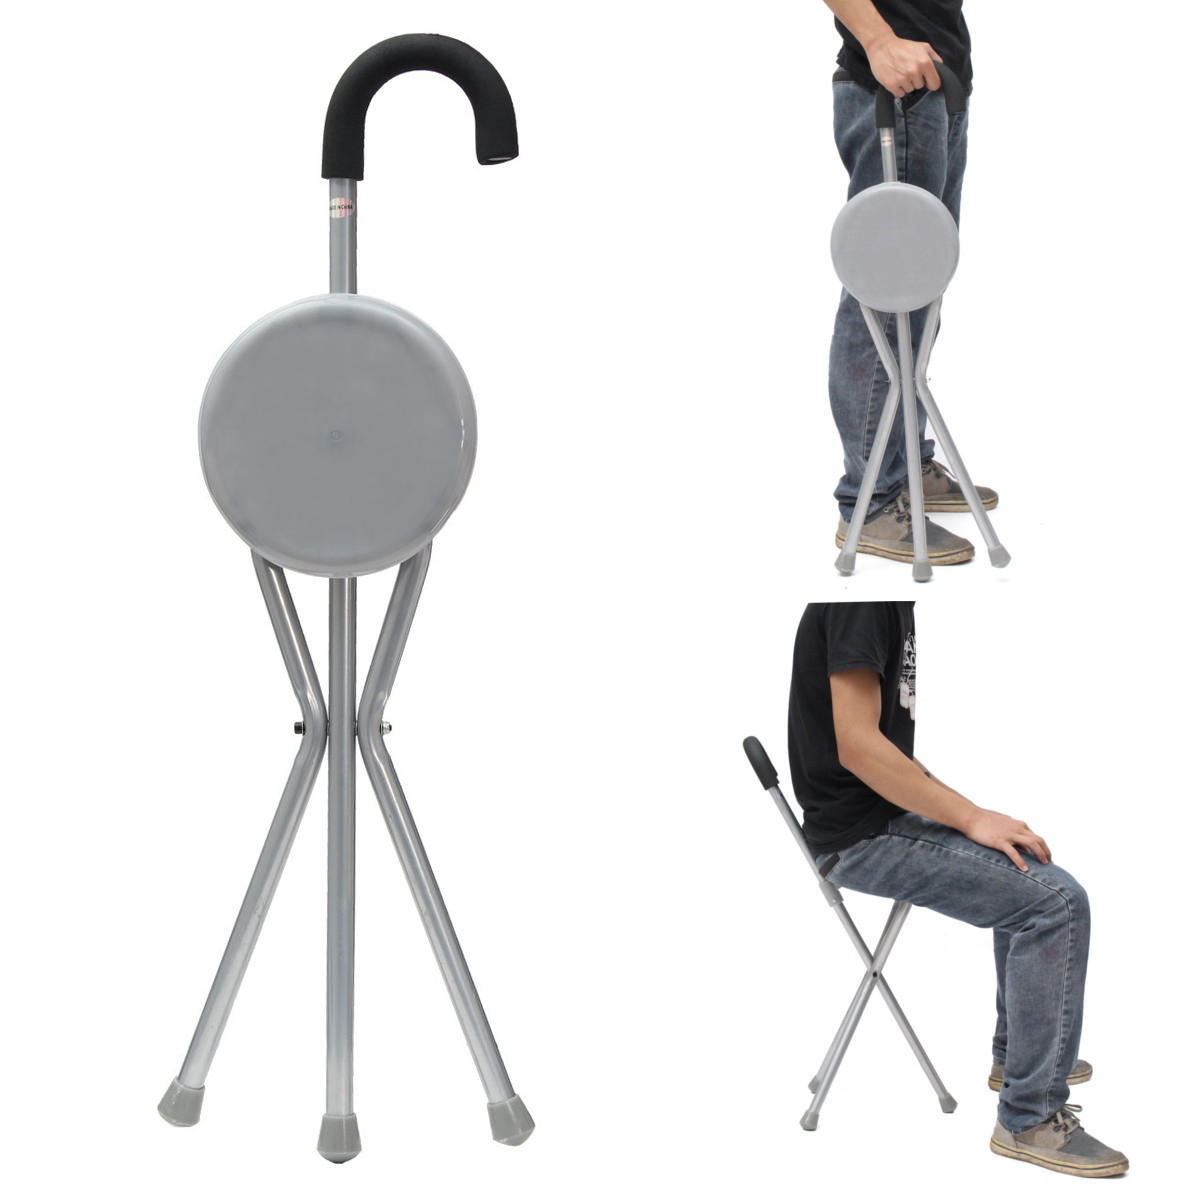 Stool Chair Ipree Outdoor Travel Folding Stool Chair Portable Tripod Cane Walking Stick Seat Camping Hiking